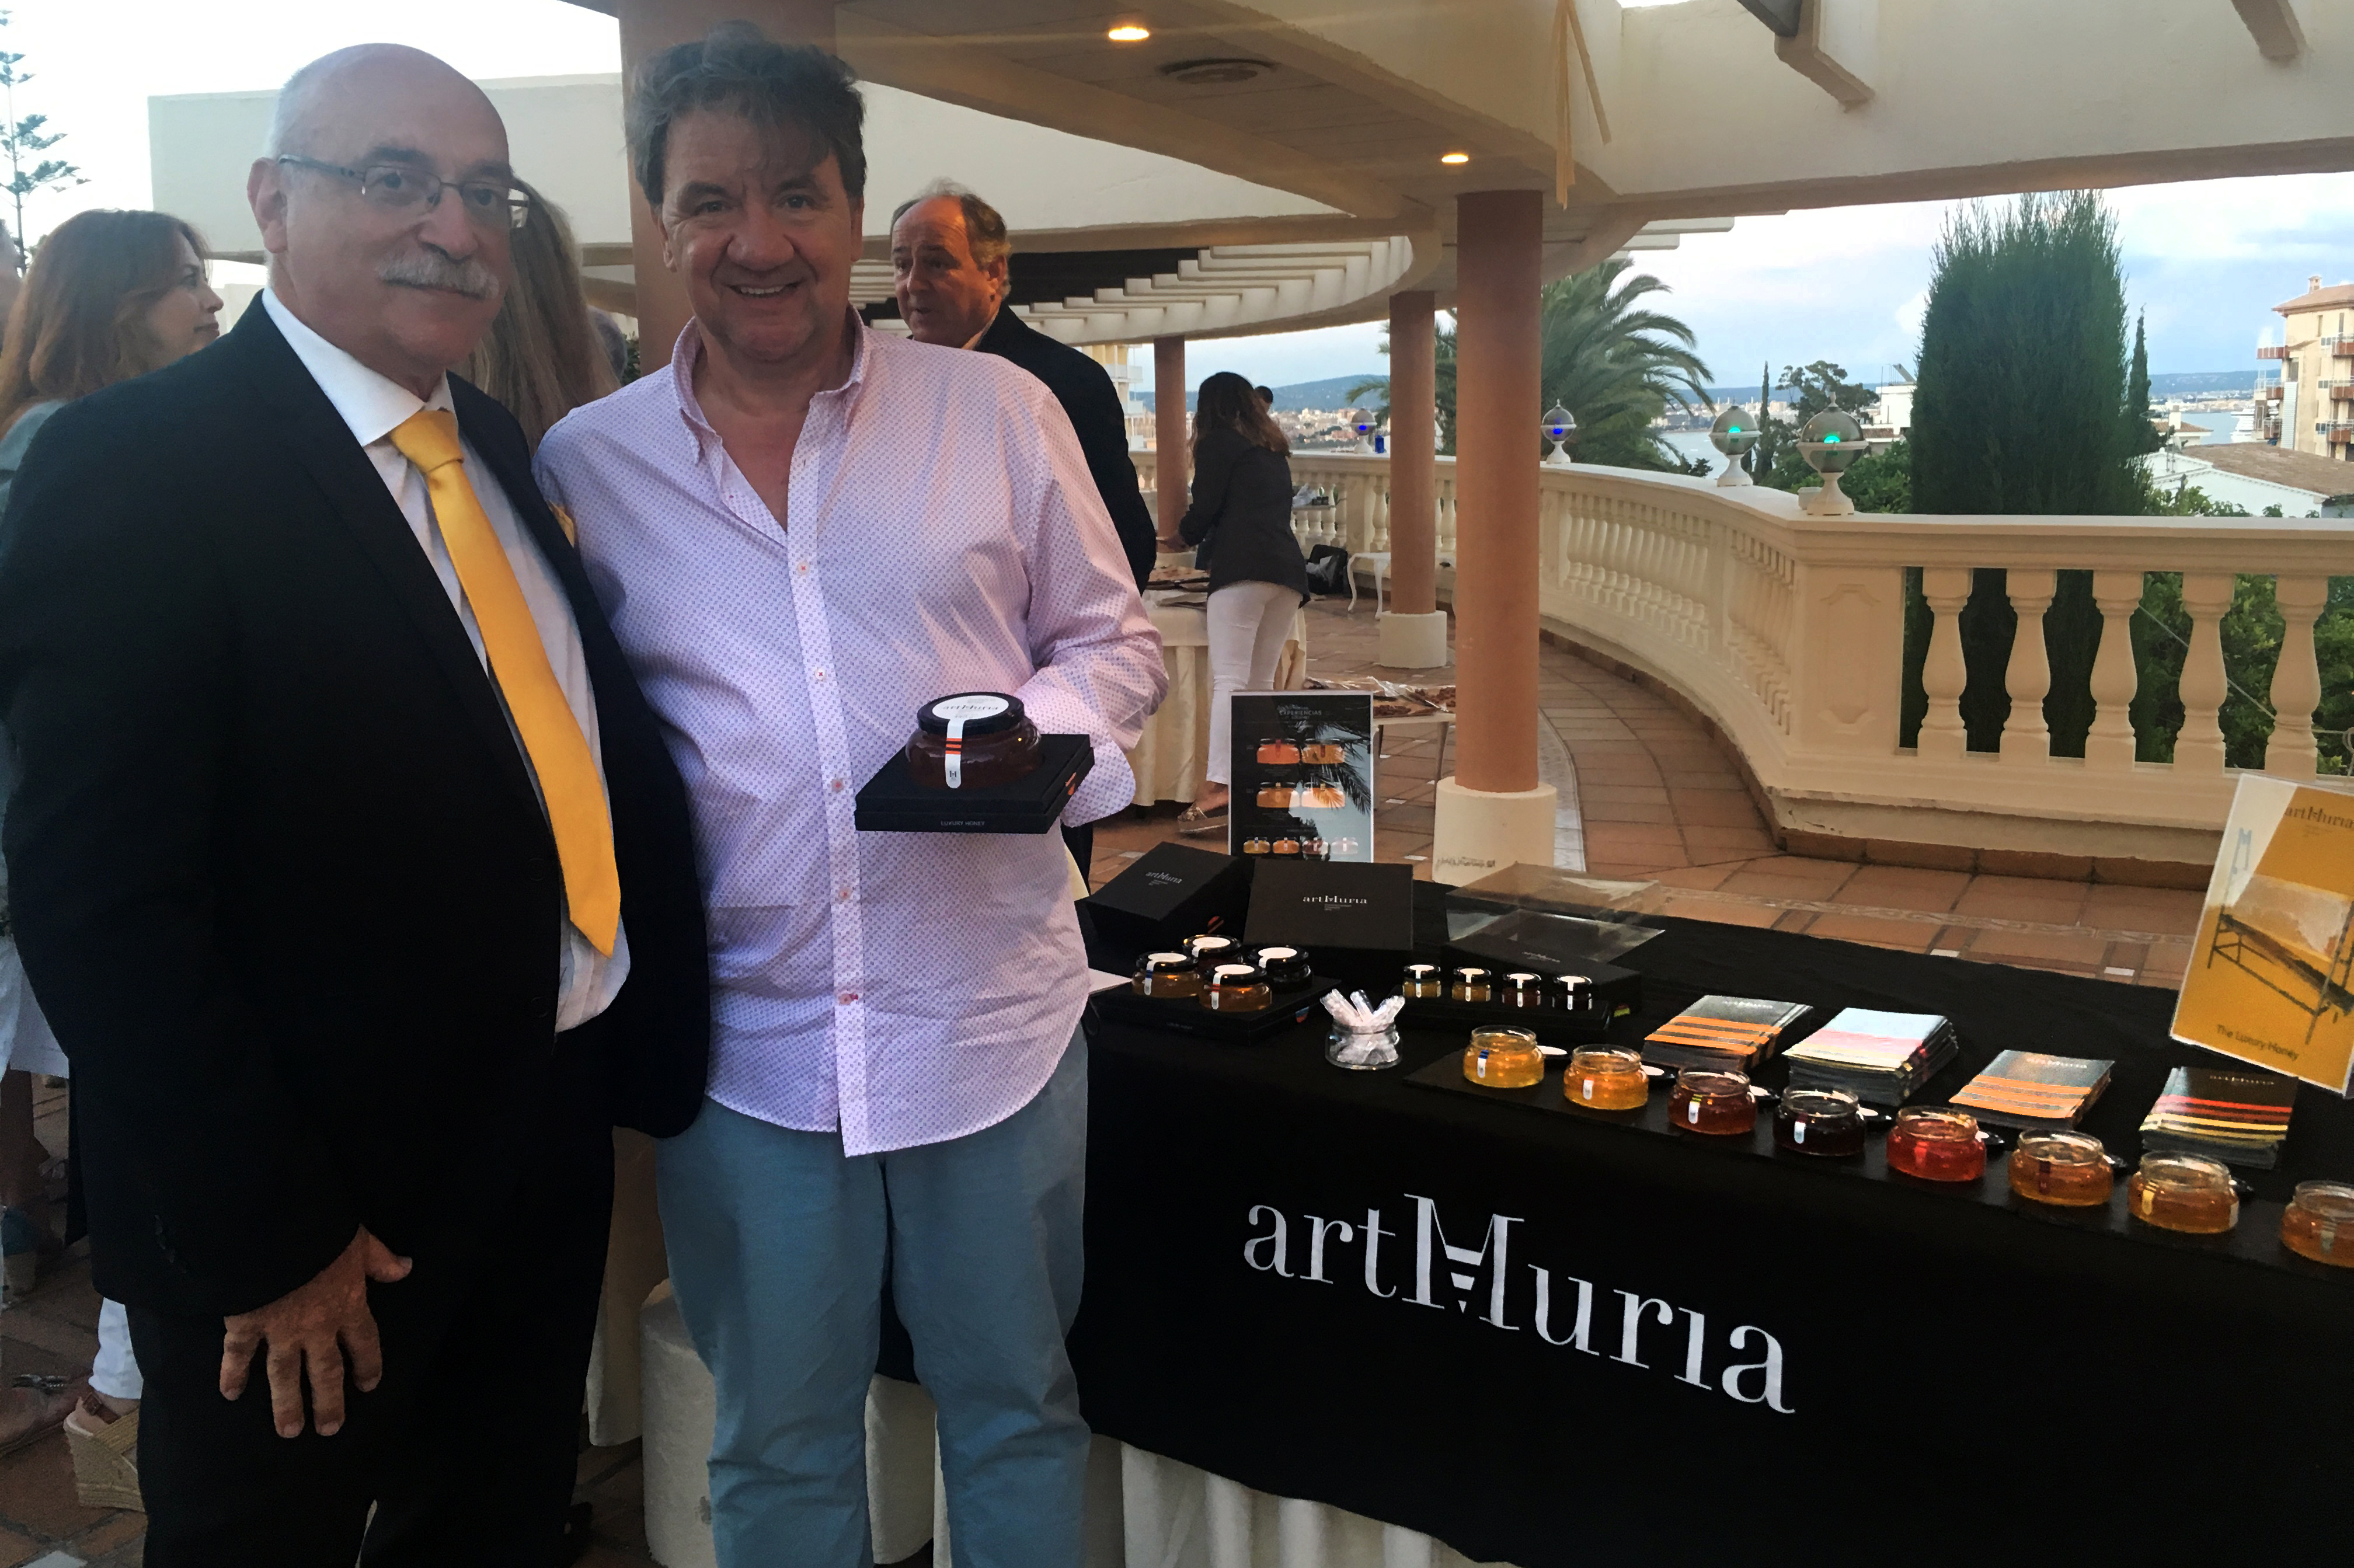 Tasting artMuria at the Taste of Spain event at Palma de Mallorca